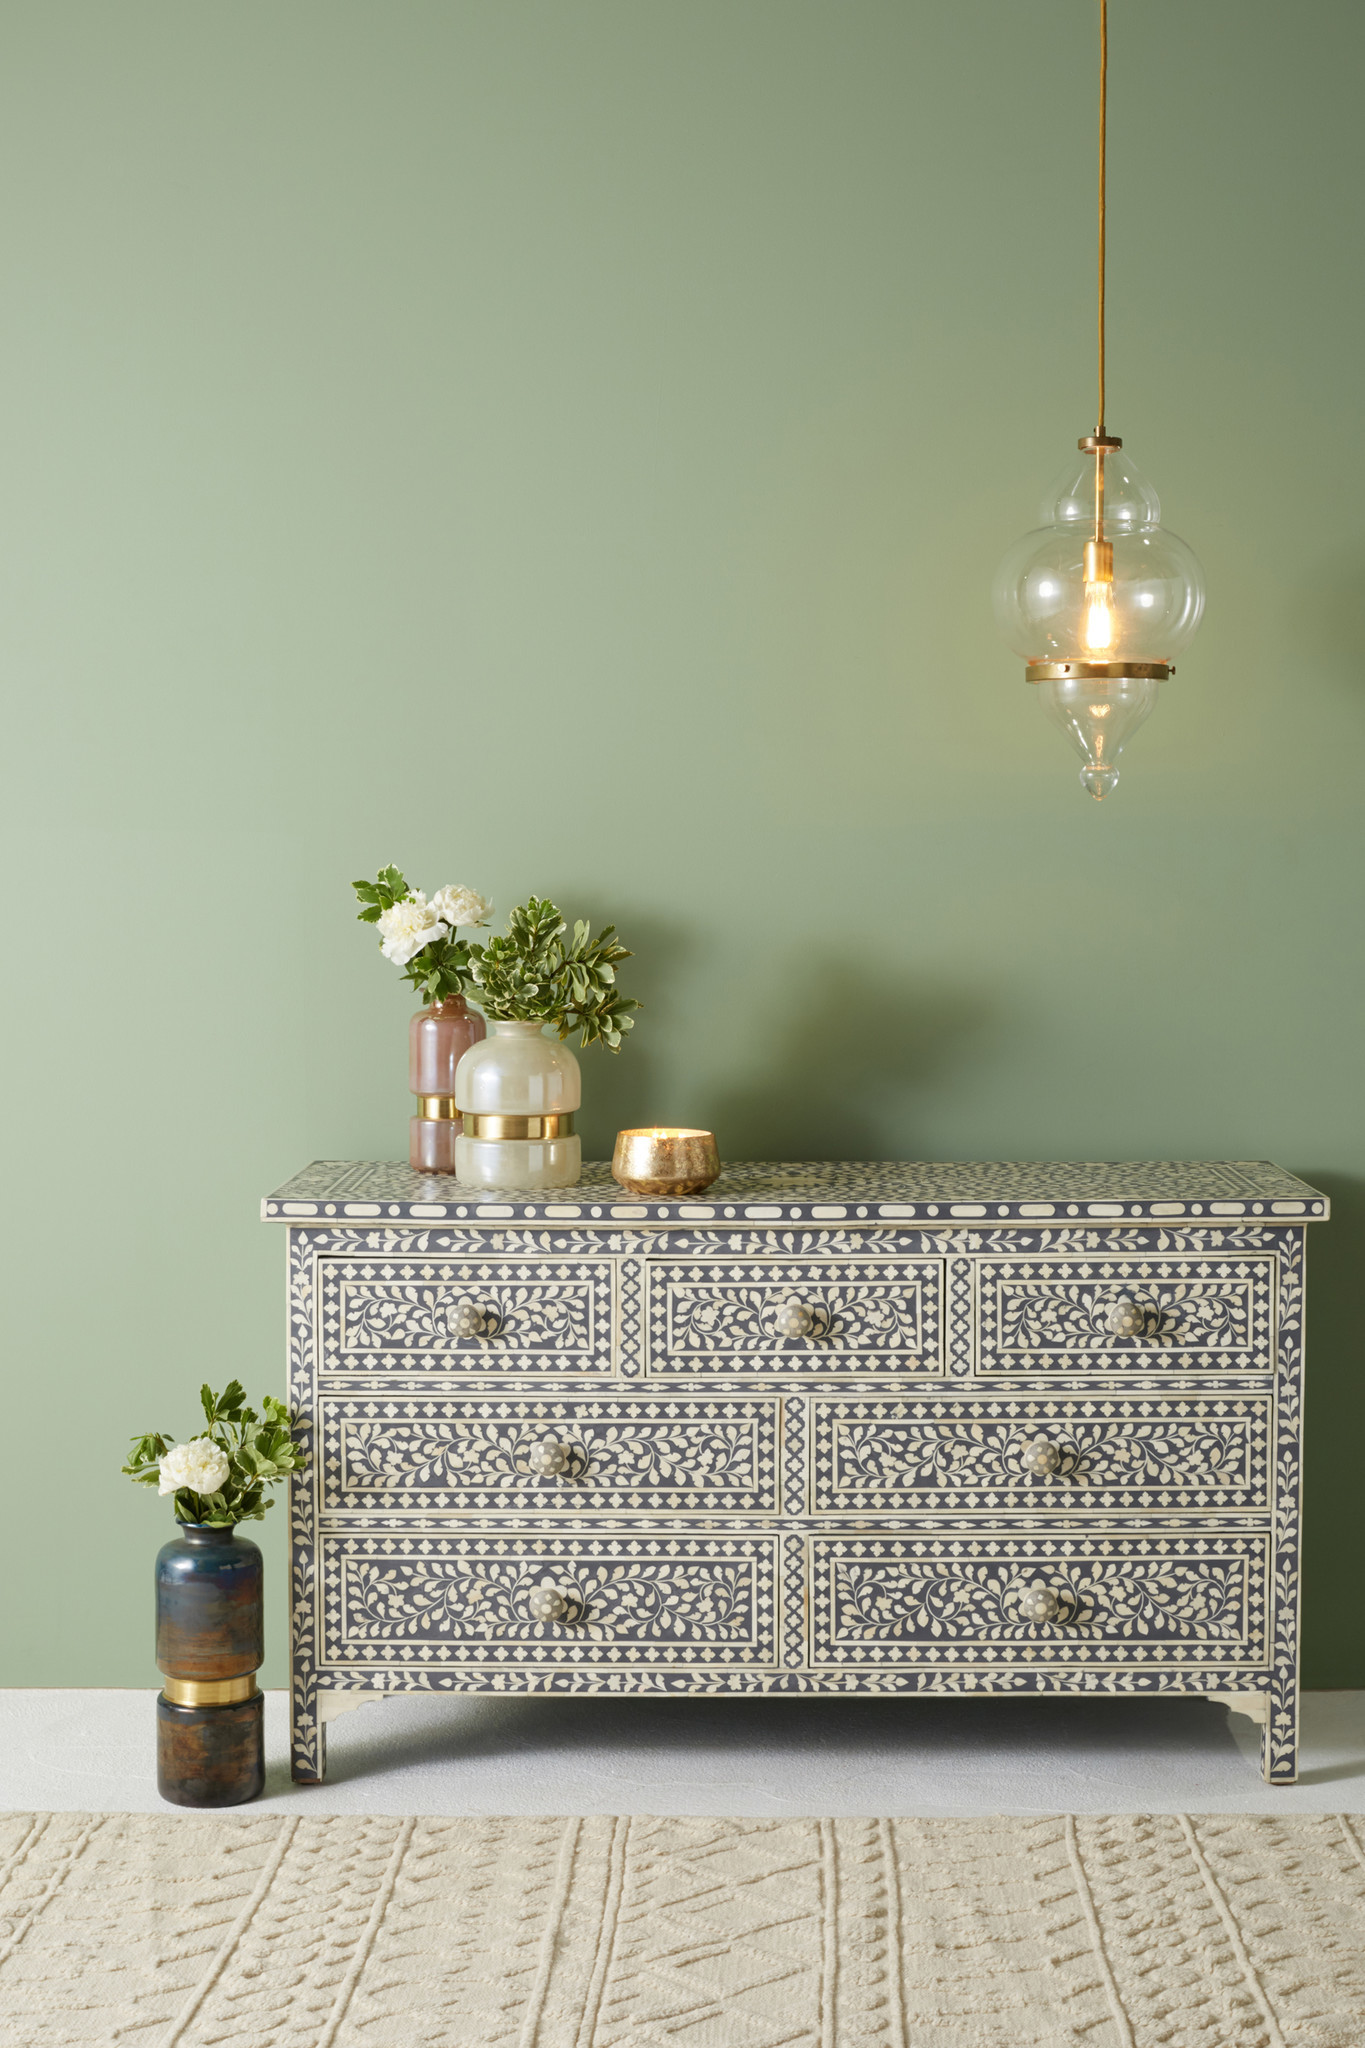 Decorative Design: Bone inlay dresser, $2,498 at Anthropologie. Credit: Anthropologie